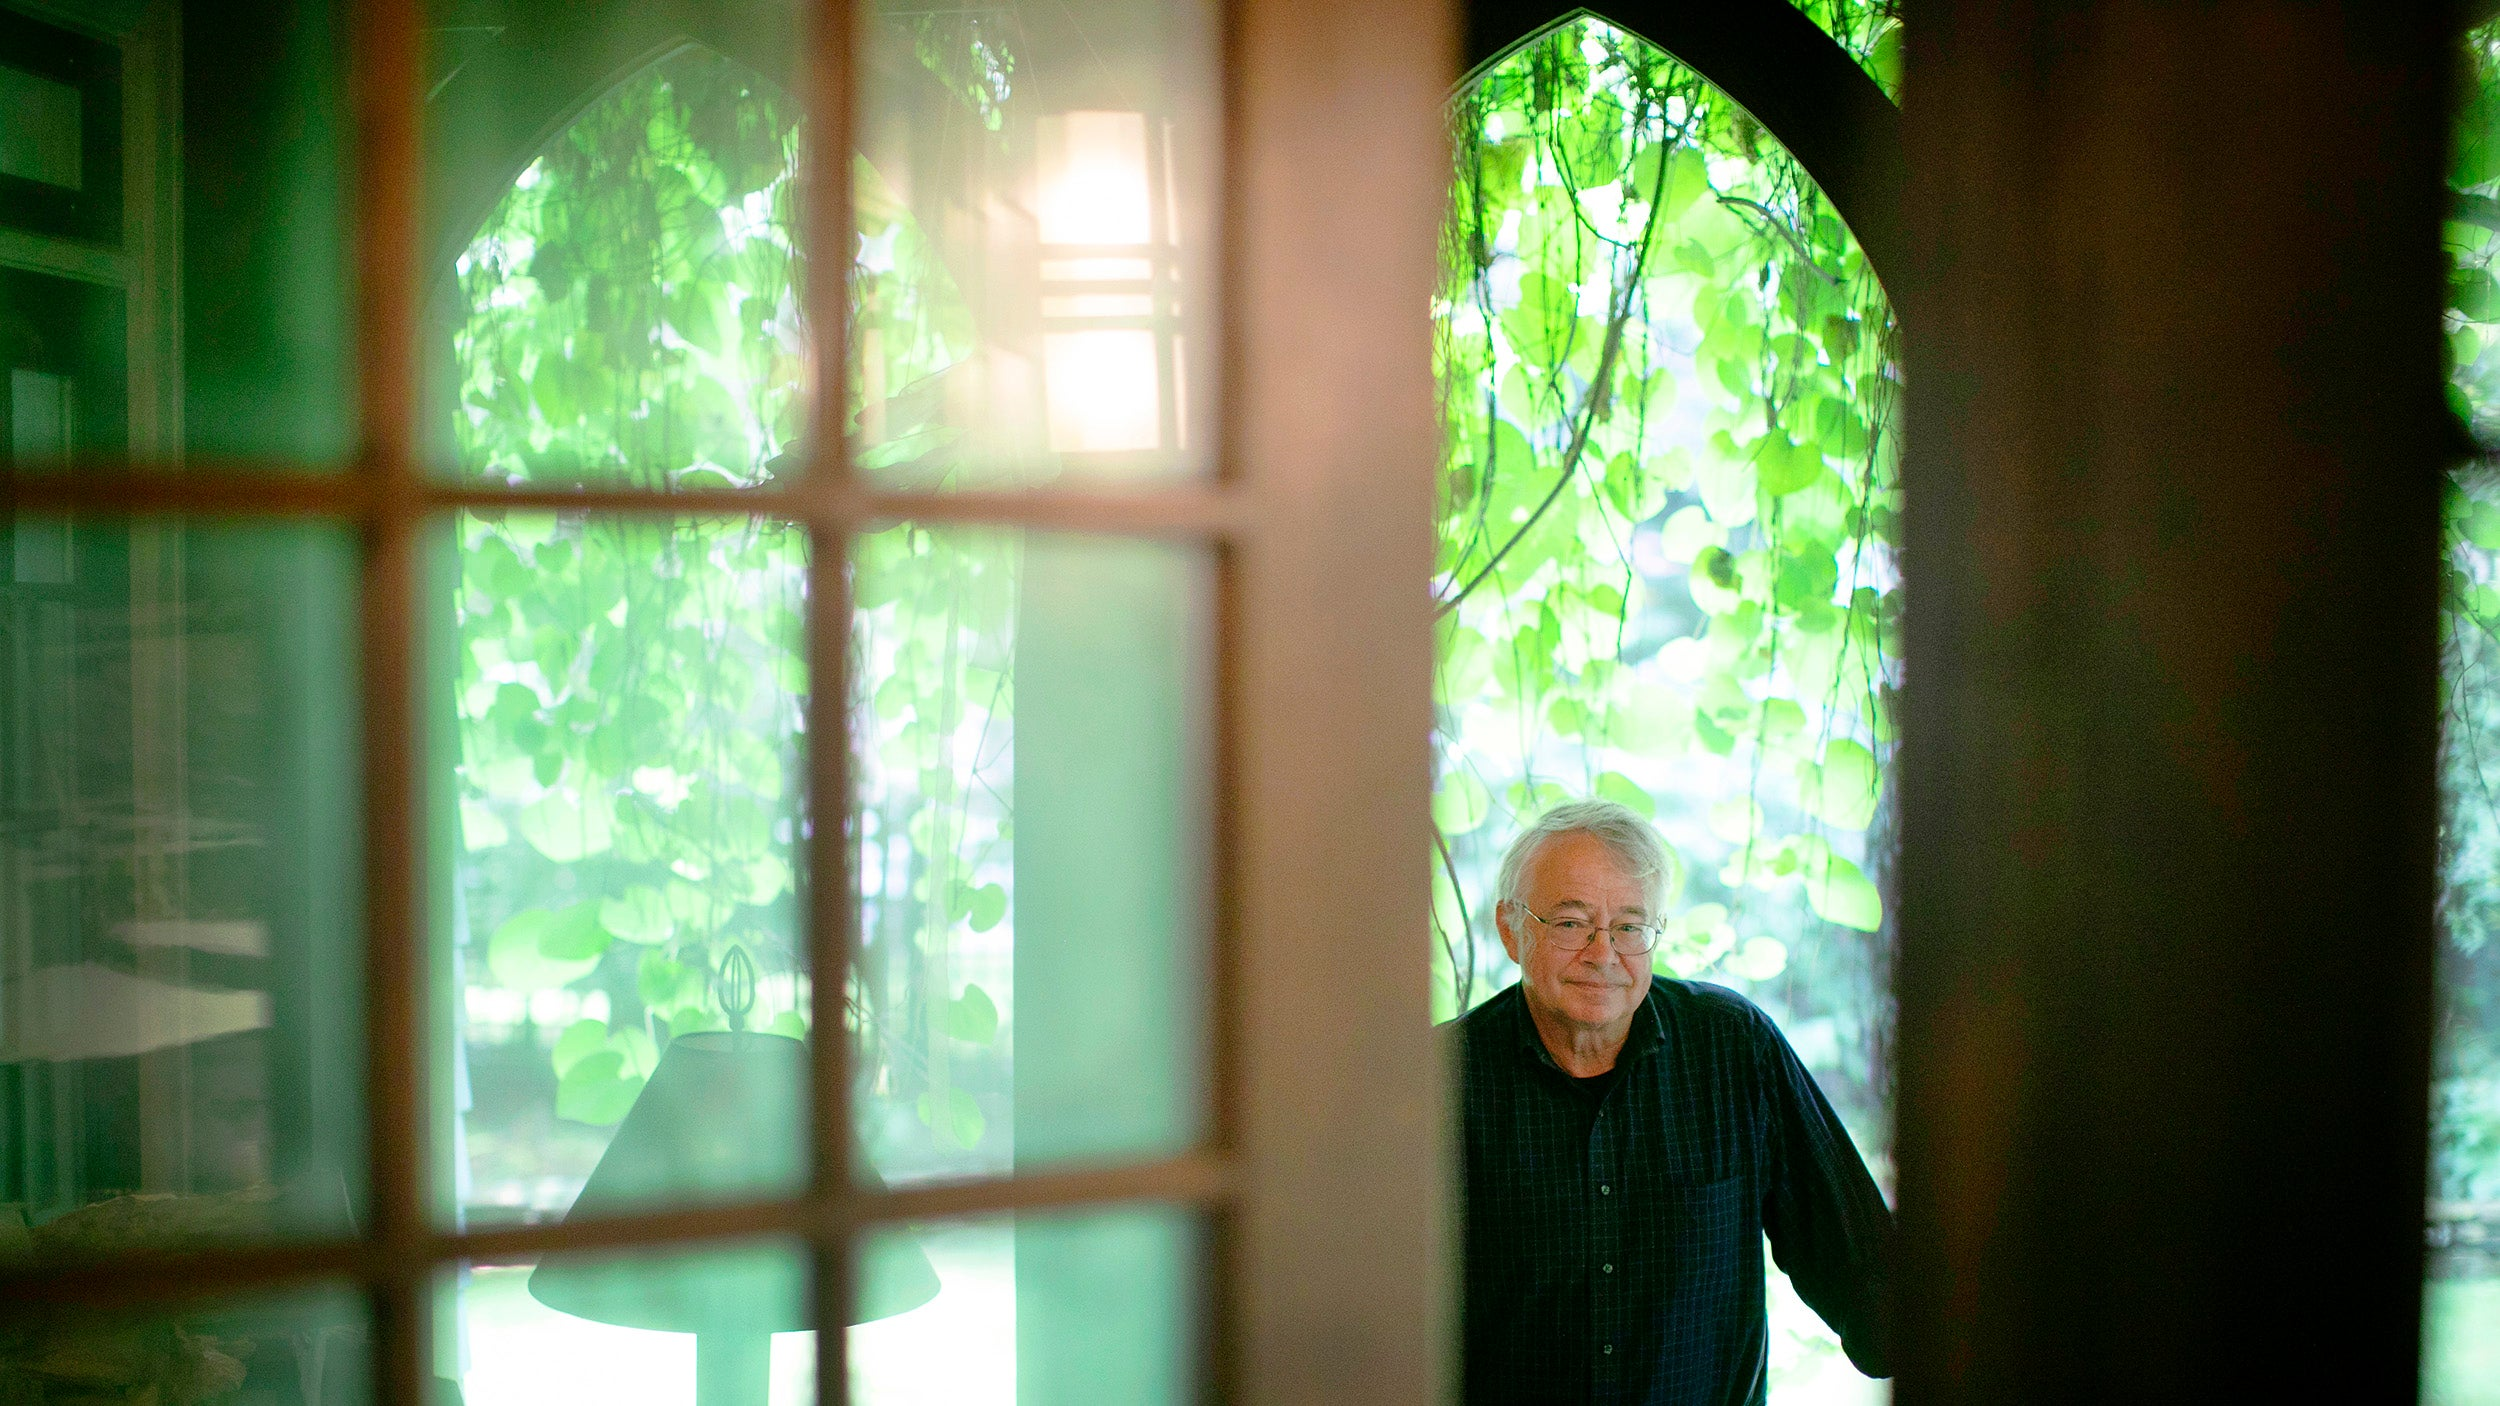 Stephen Coit, the artist of the Harvard Foundation Portraiture Project, is pictured in his Cambridge home.